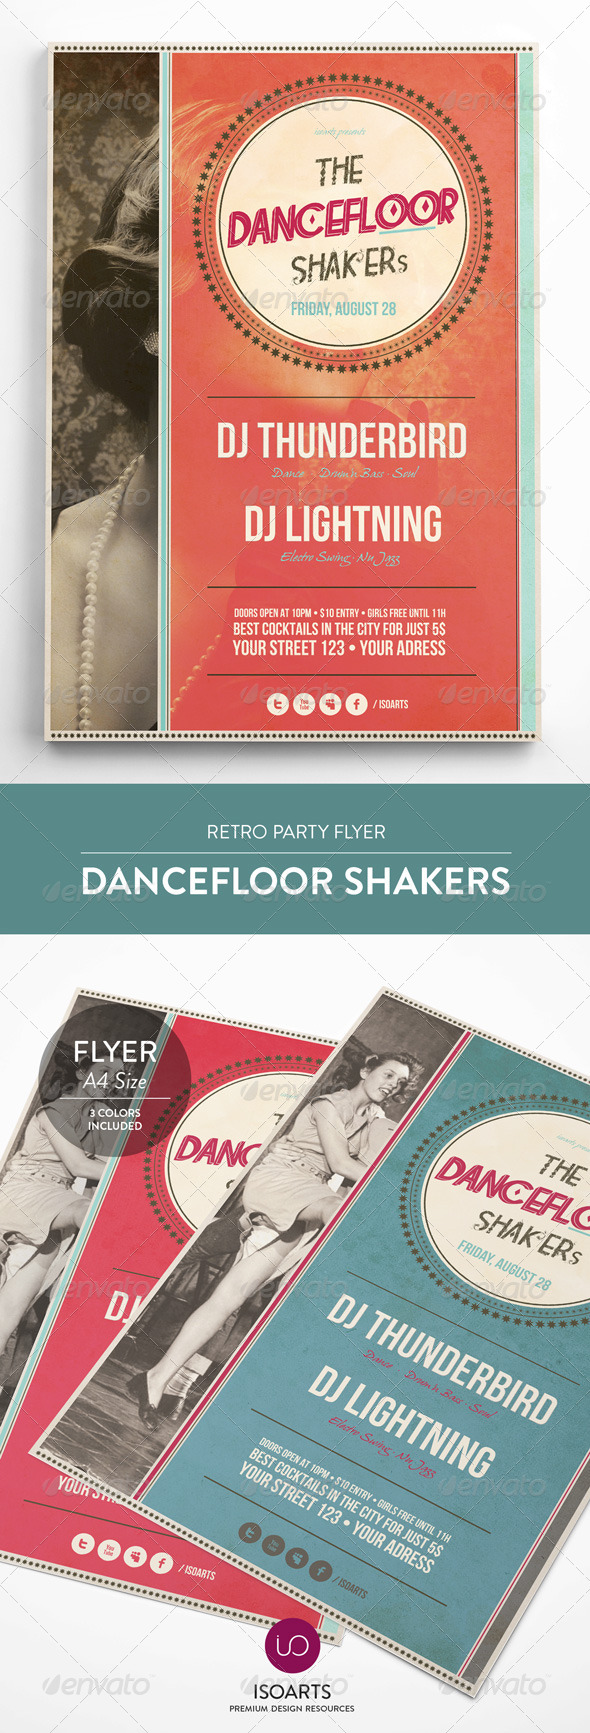 Dancefloor Shakers • Retro Party Flyer - Events Flyers